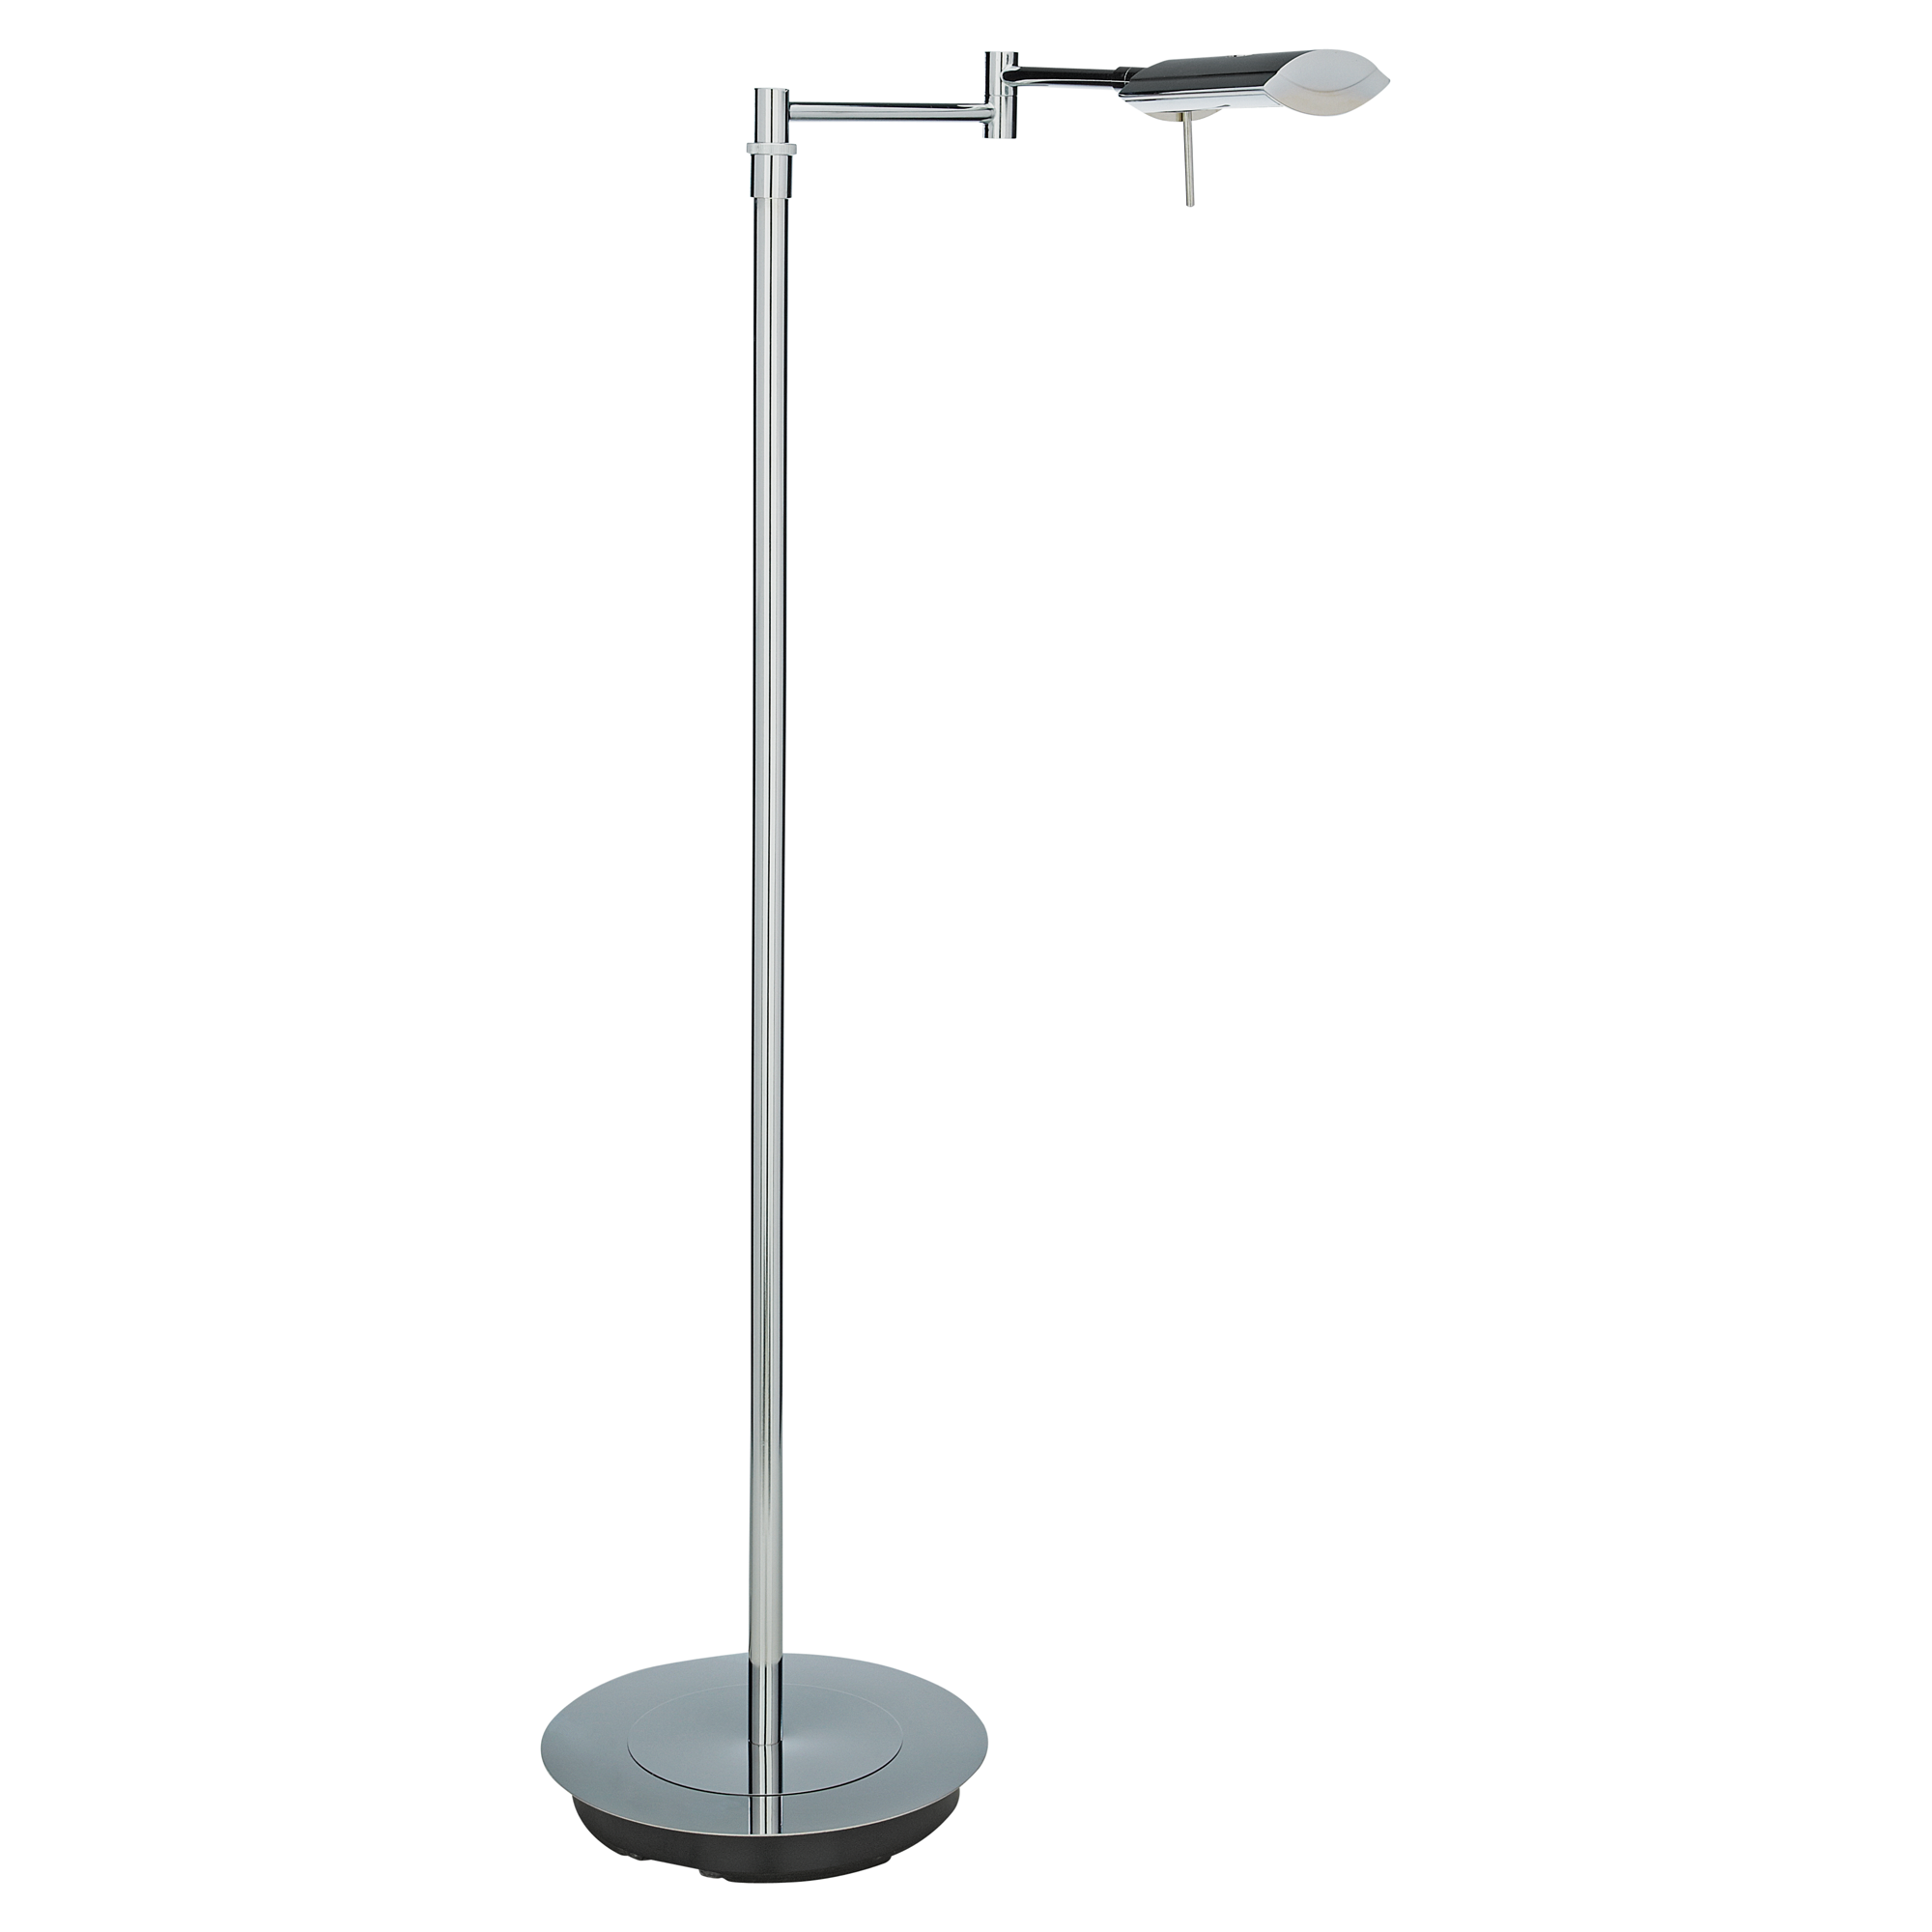 Led Stehlampe Dimmbar Toom